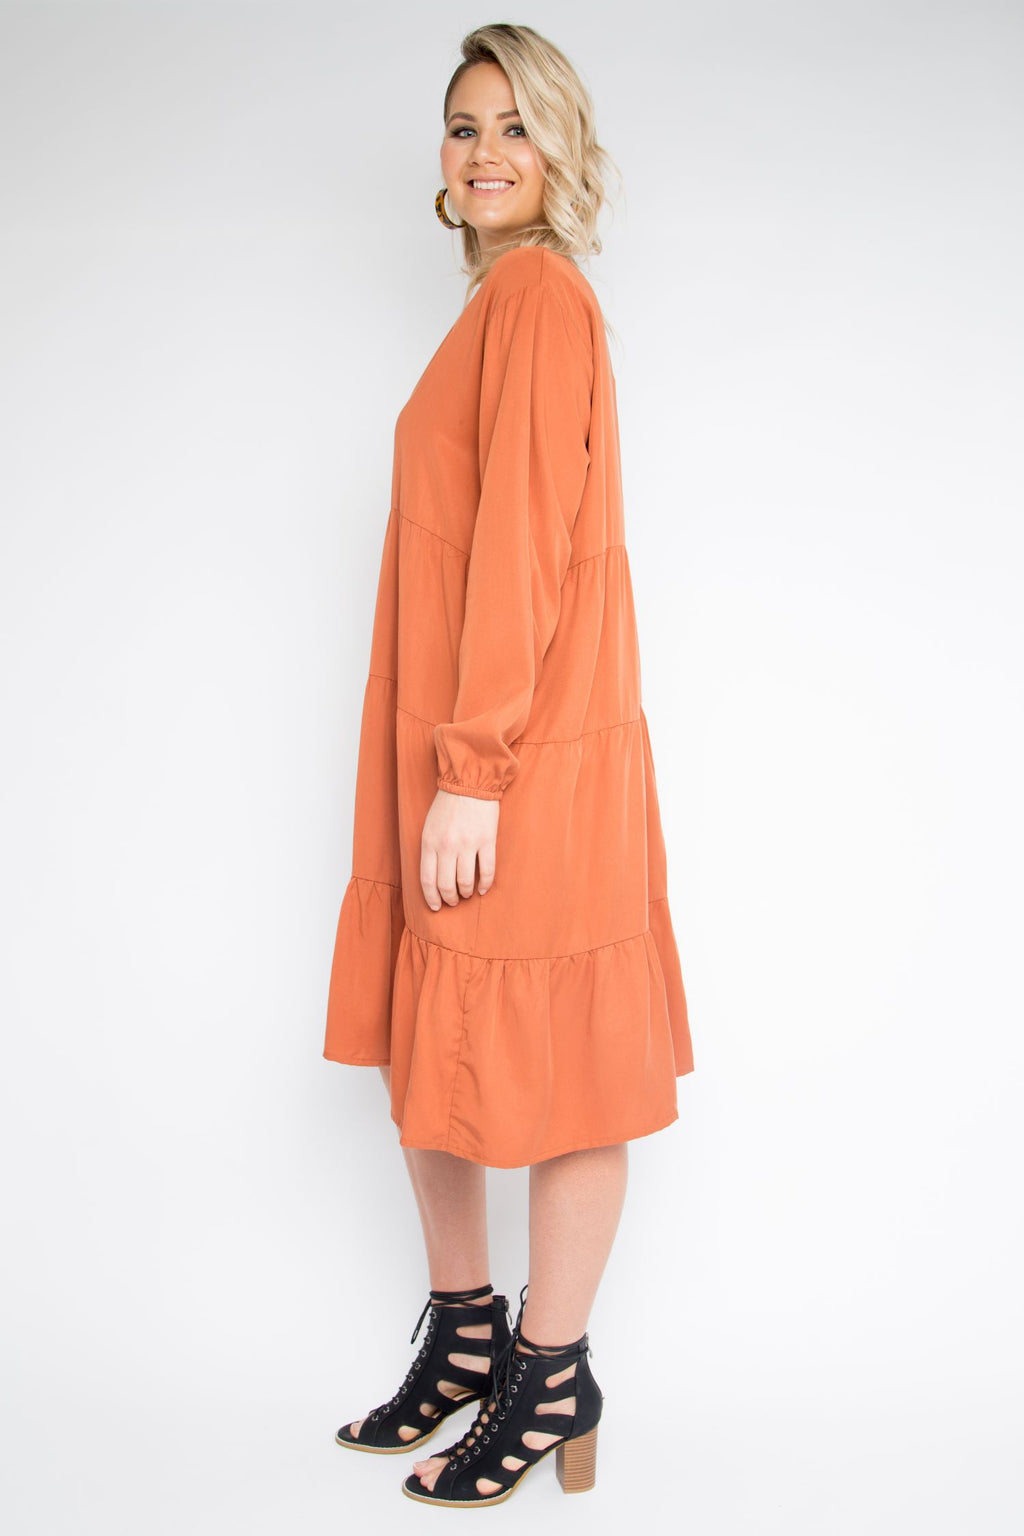 Chic Dress in Pumpkin Spice (Tencel)